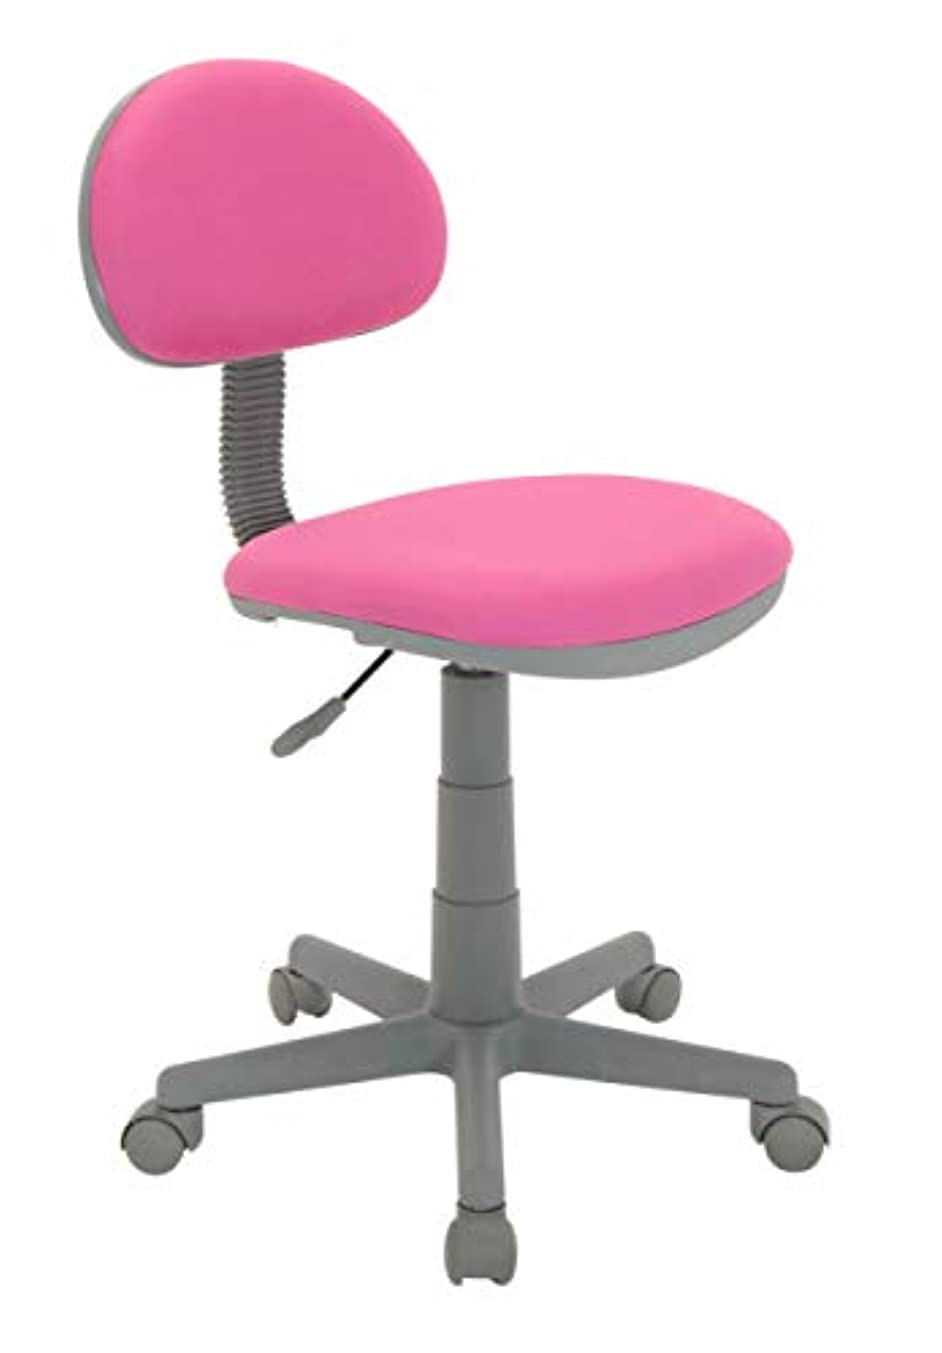 Calico Designs Deluxe Task Chair in Pink with Gray Base 18510